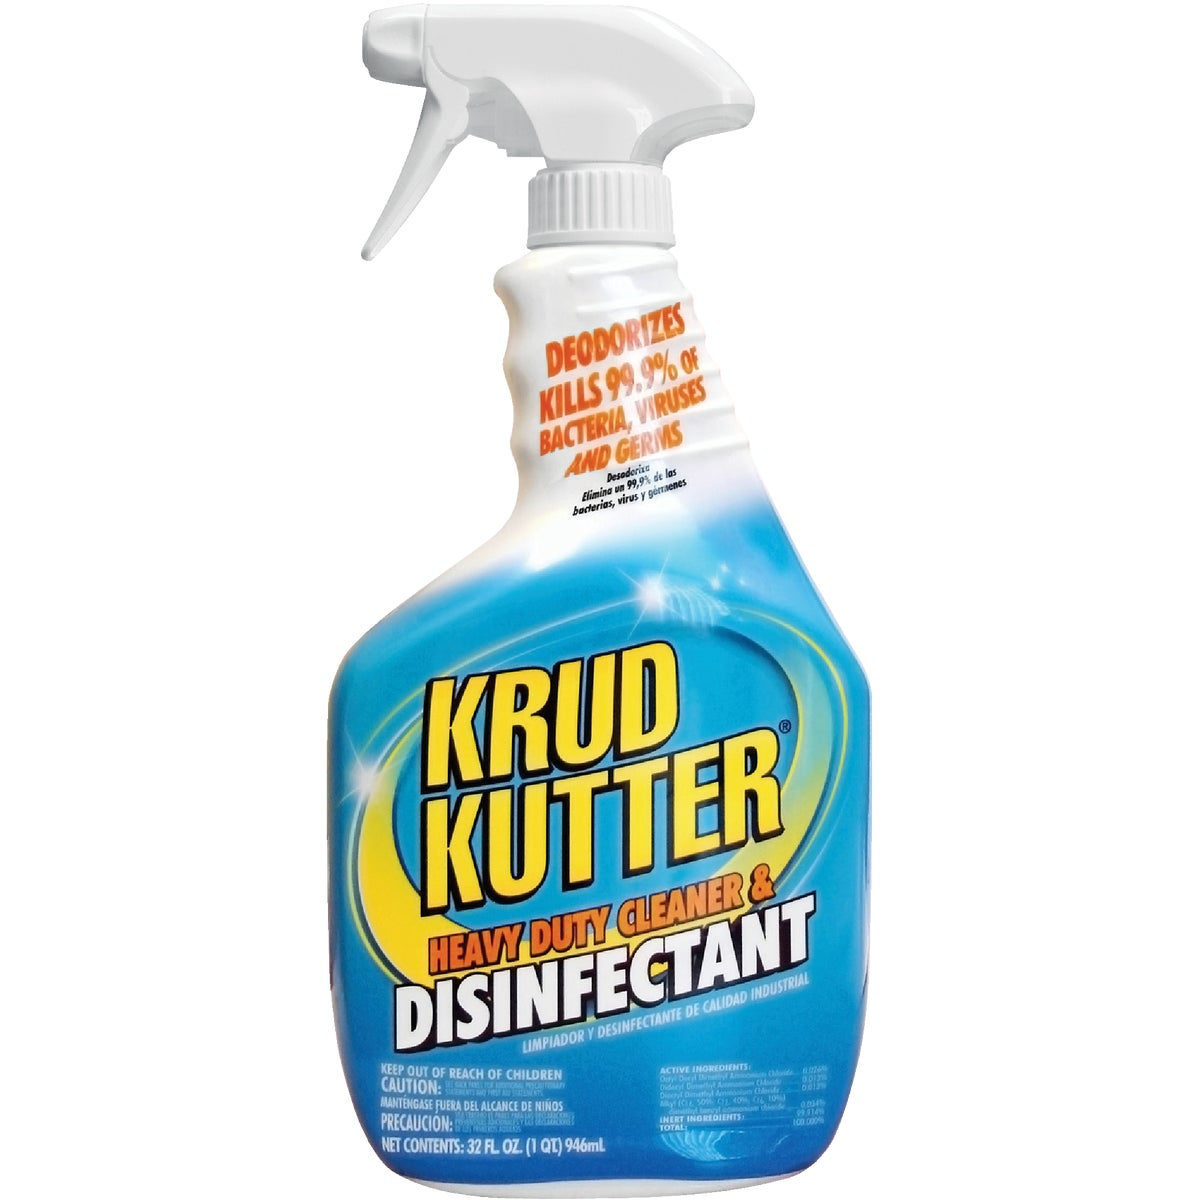 32Oz Cleanr/Disinfectant